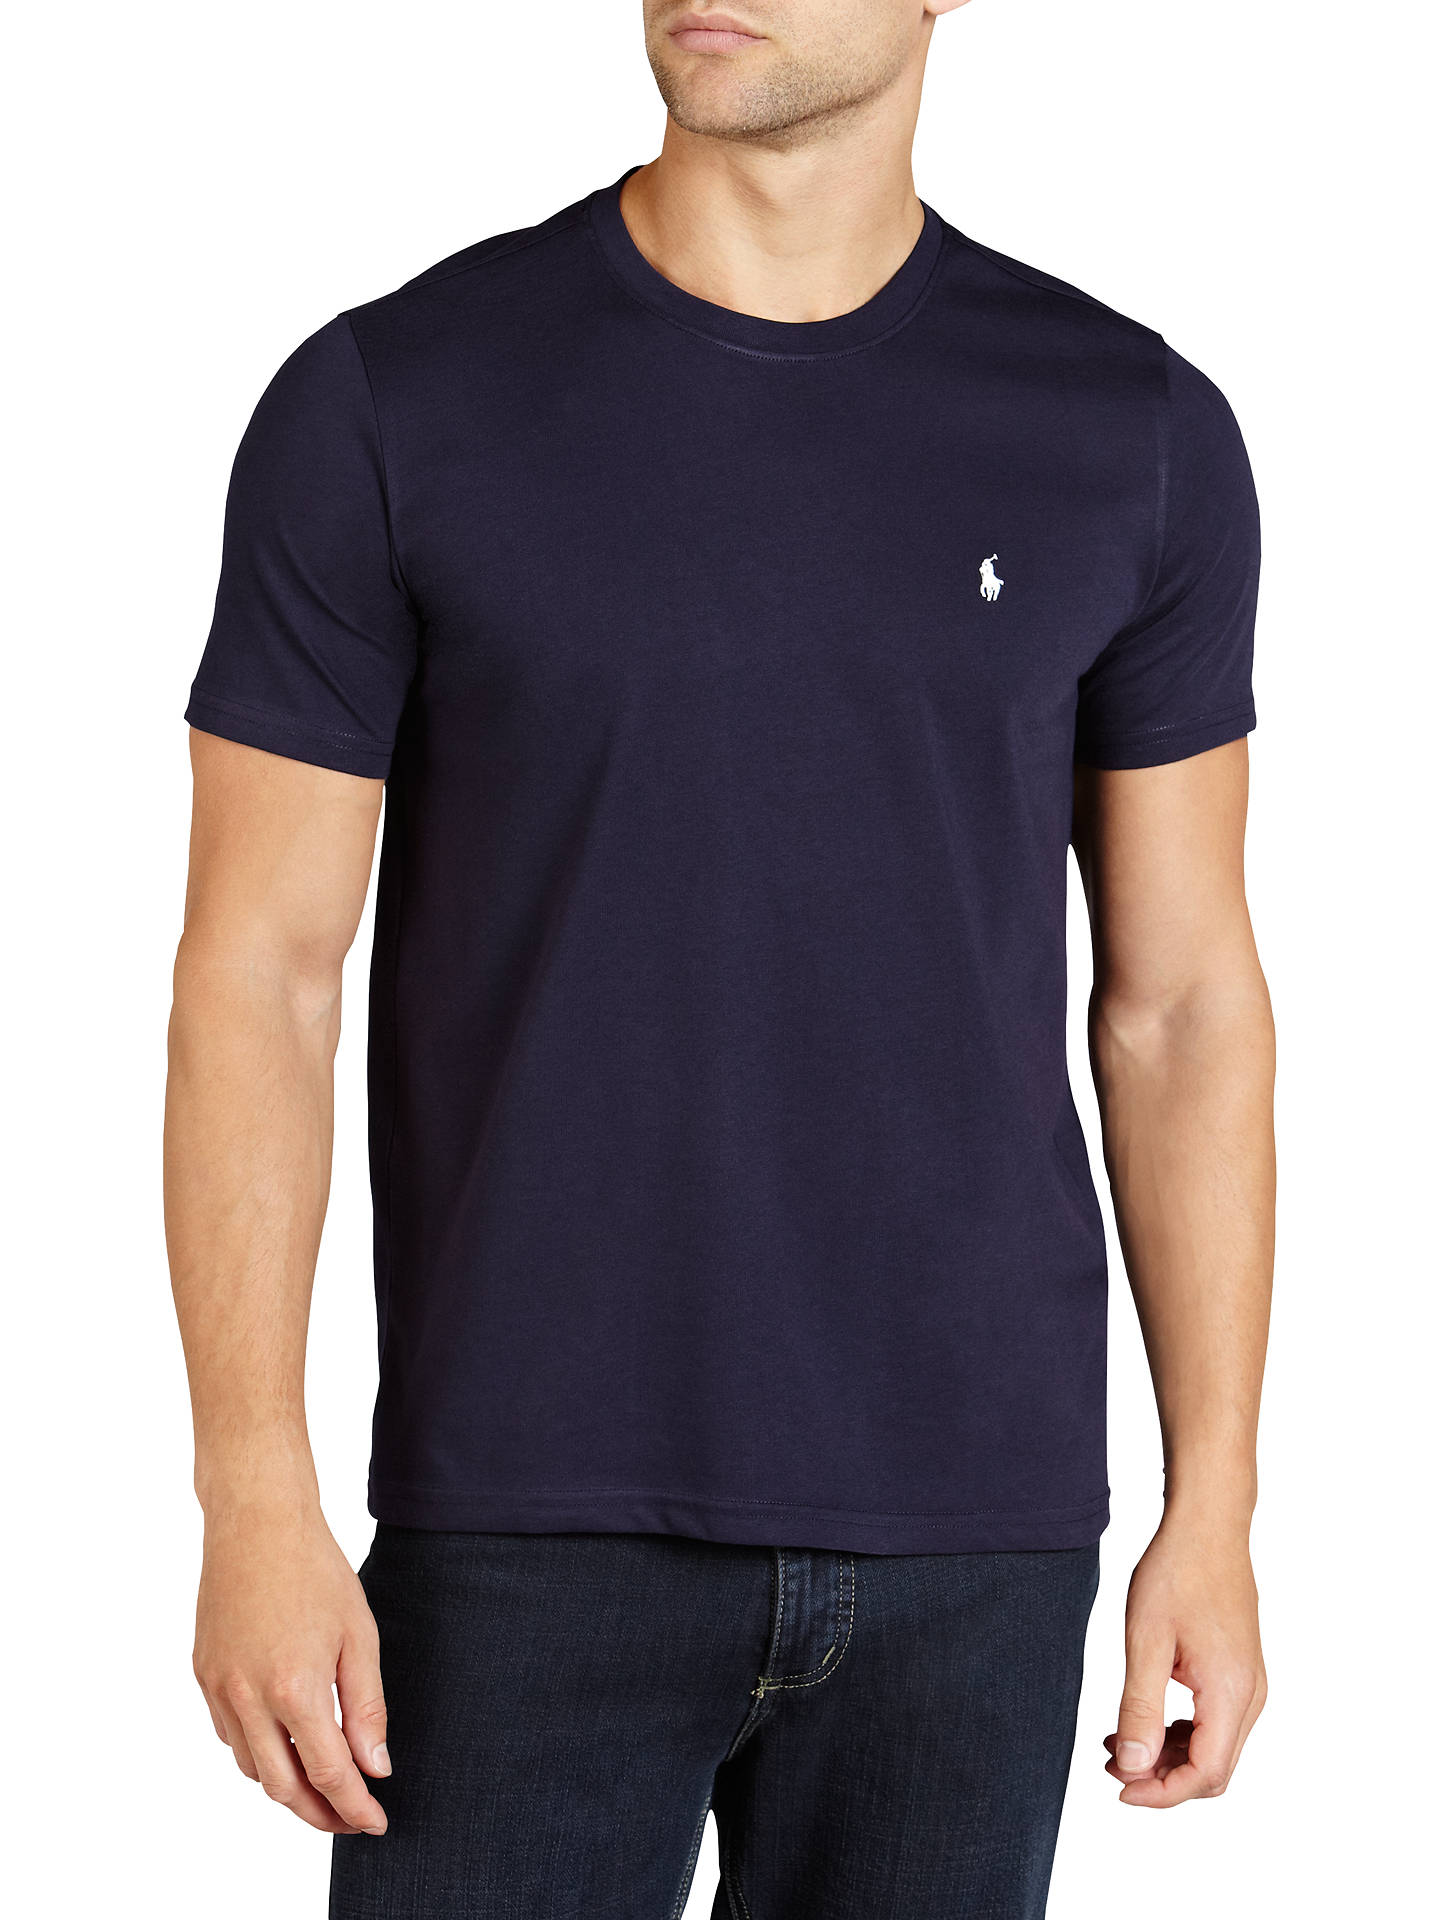 30a95c45b Buy Polo Ralph Lauren Crew Neck Lounge T-Shirt, Navy, M Online at ...